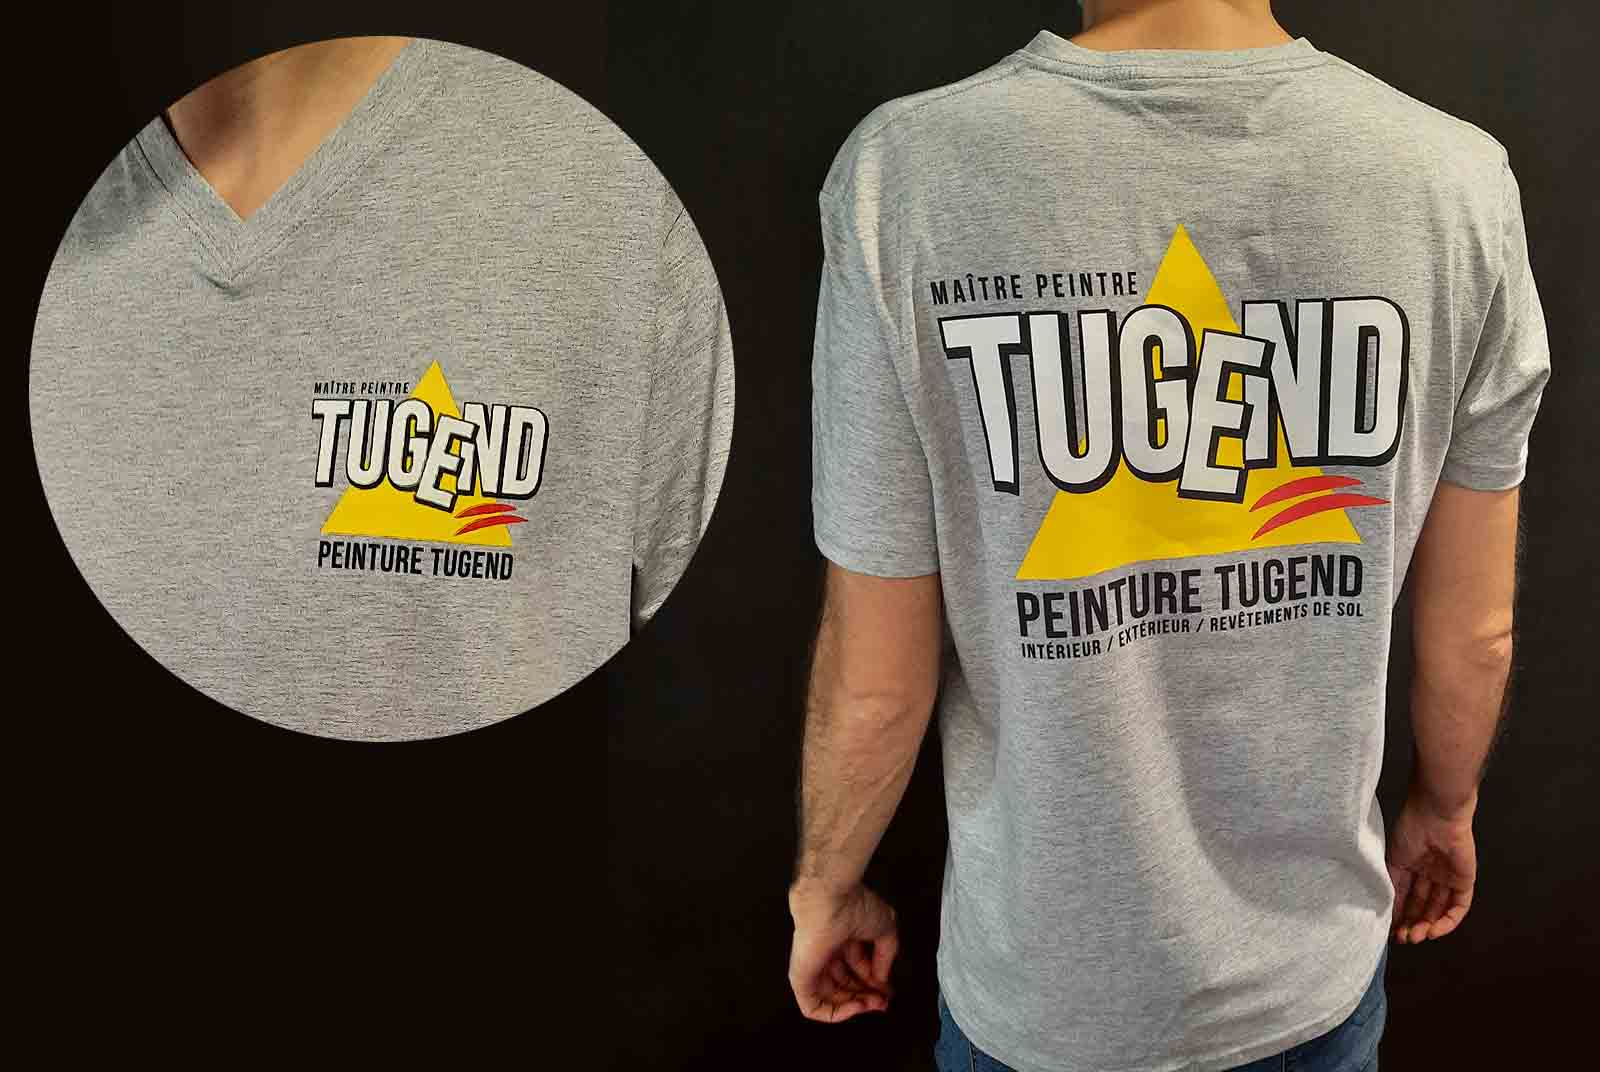 TUGEND_TEXTILE